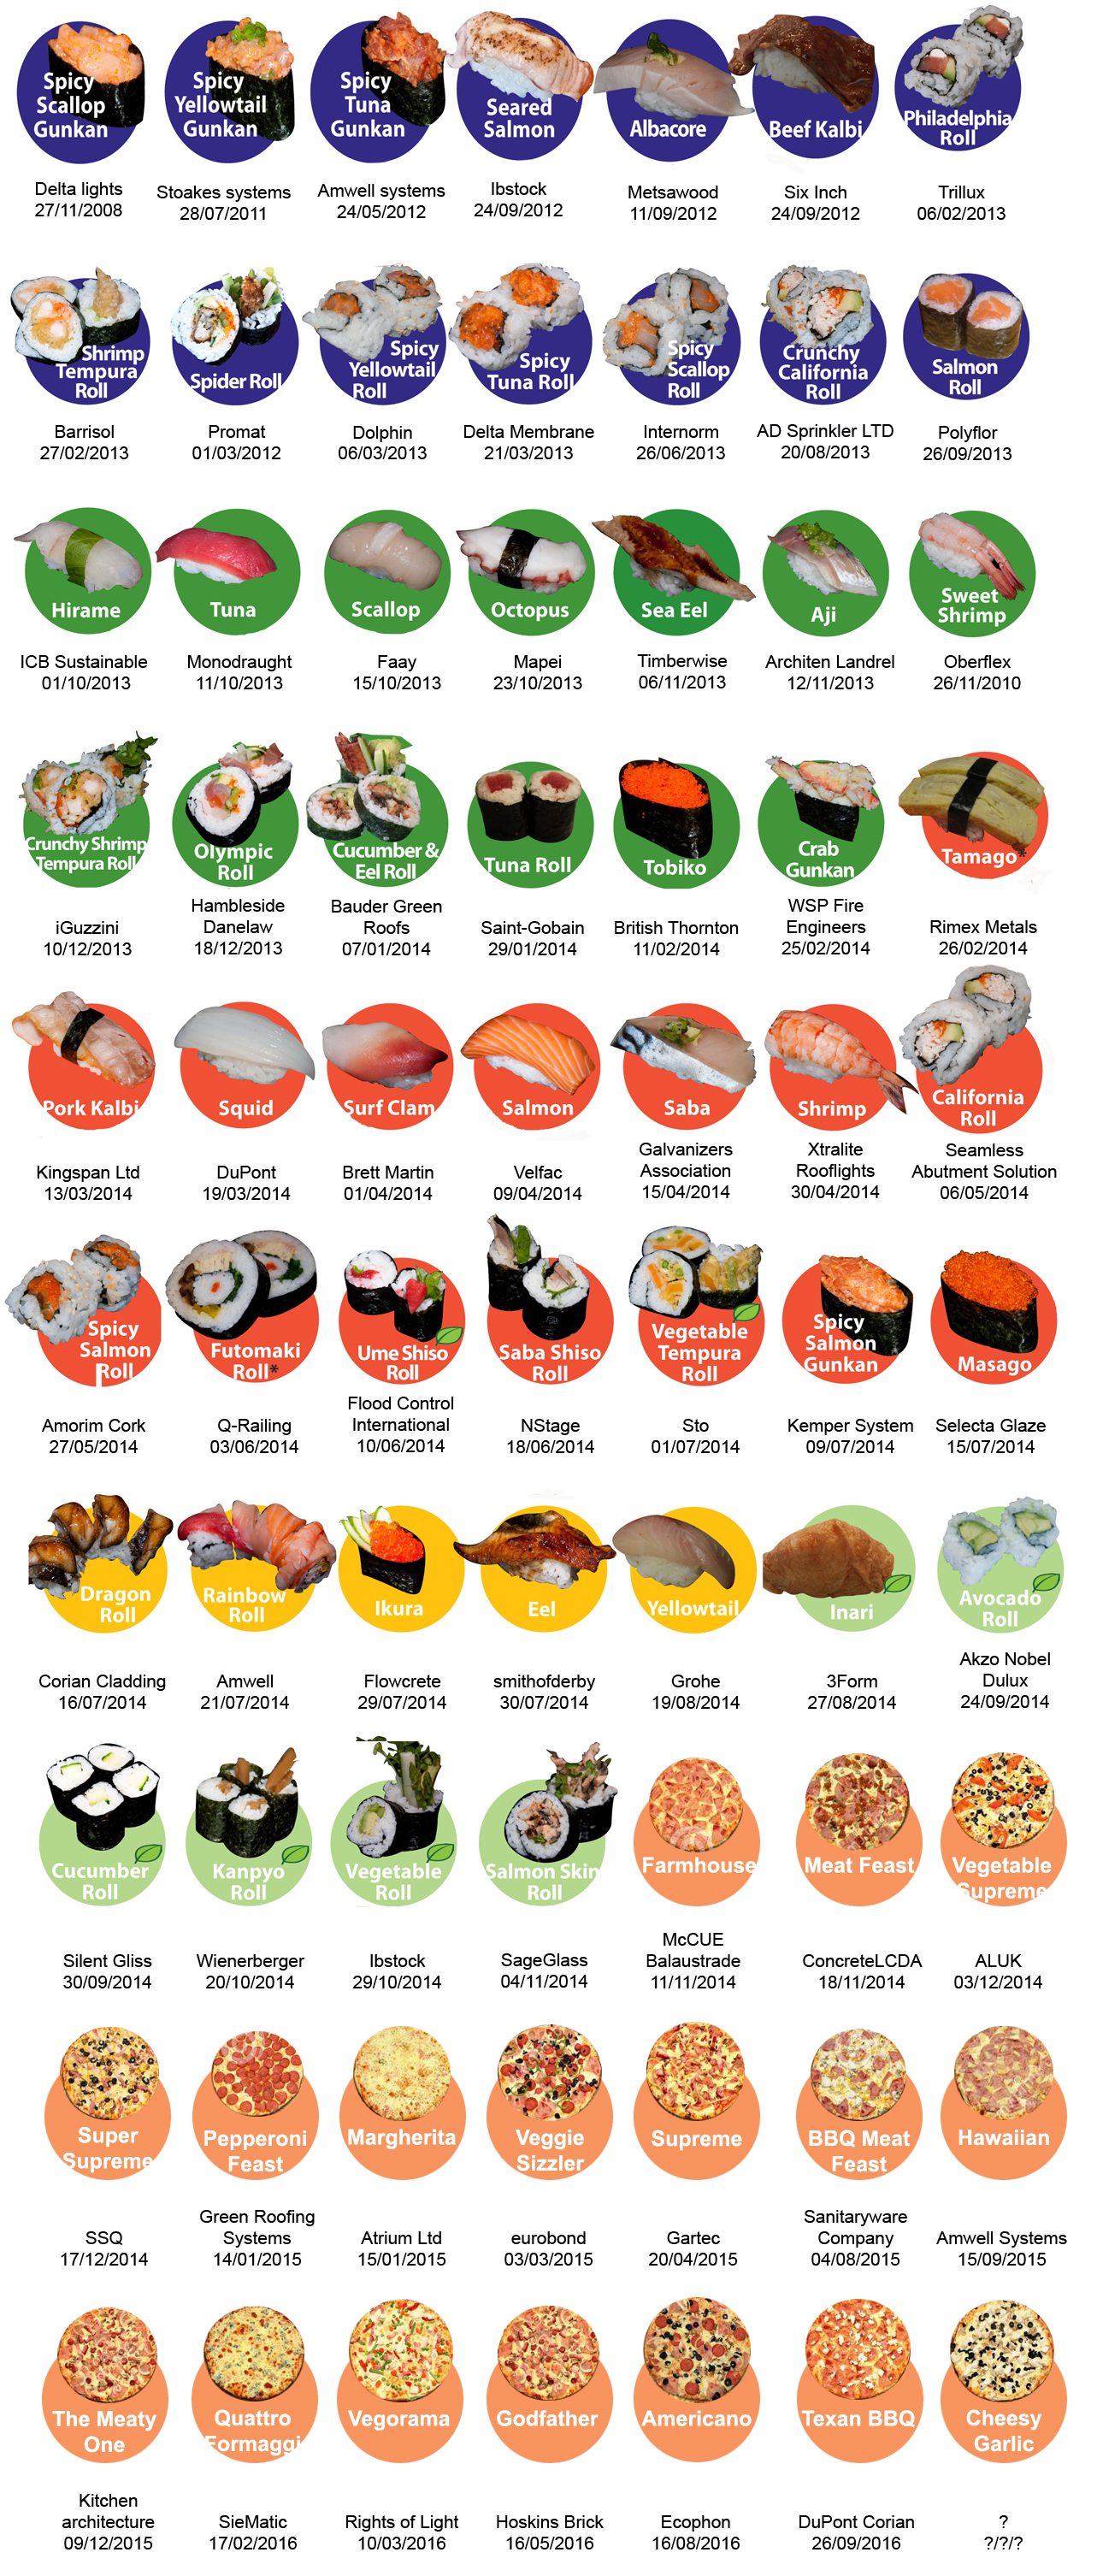 000off_sushi-and-pizza-cpd-calendar